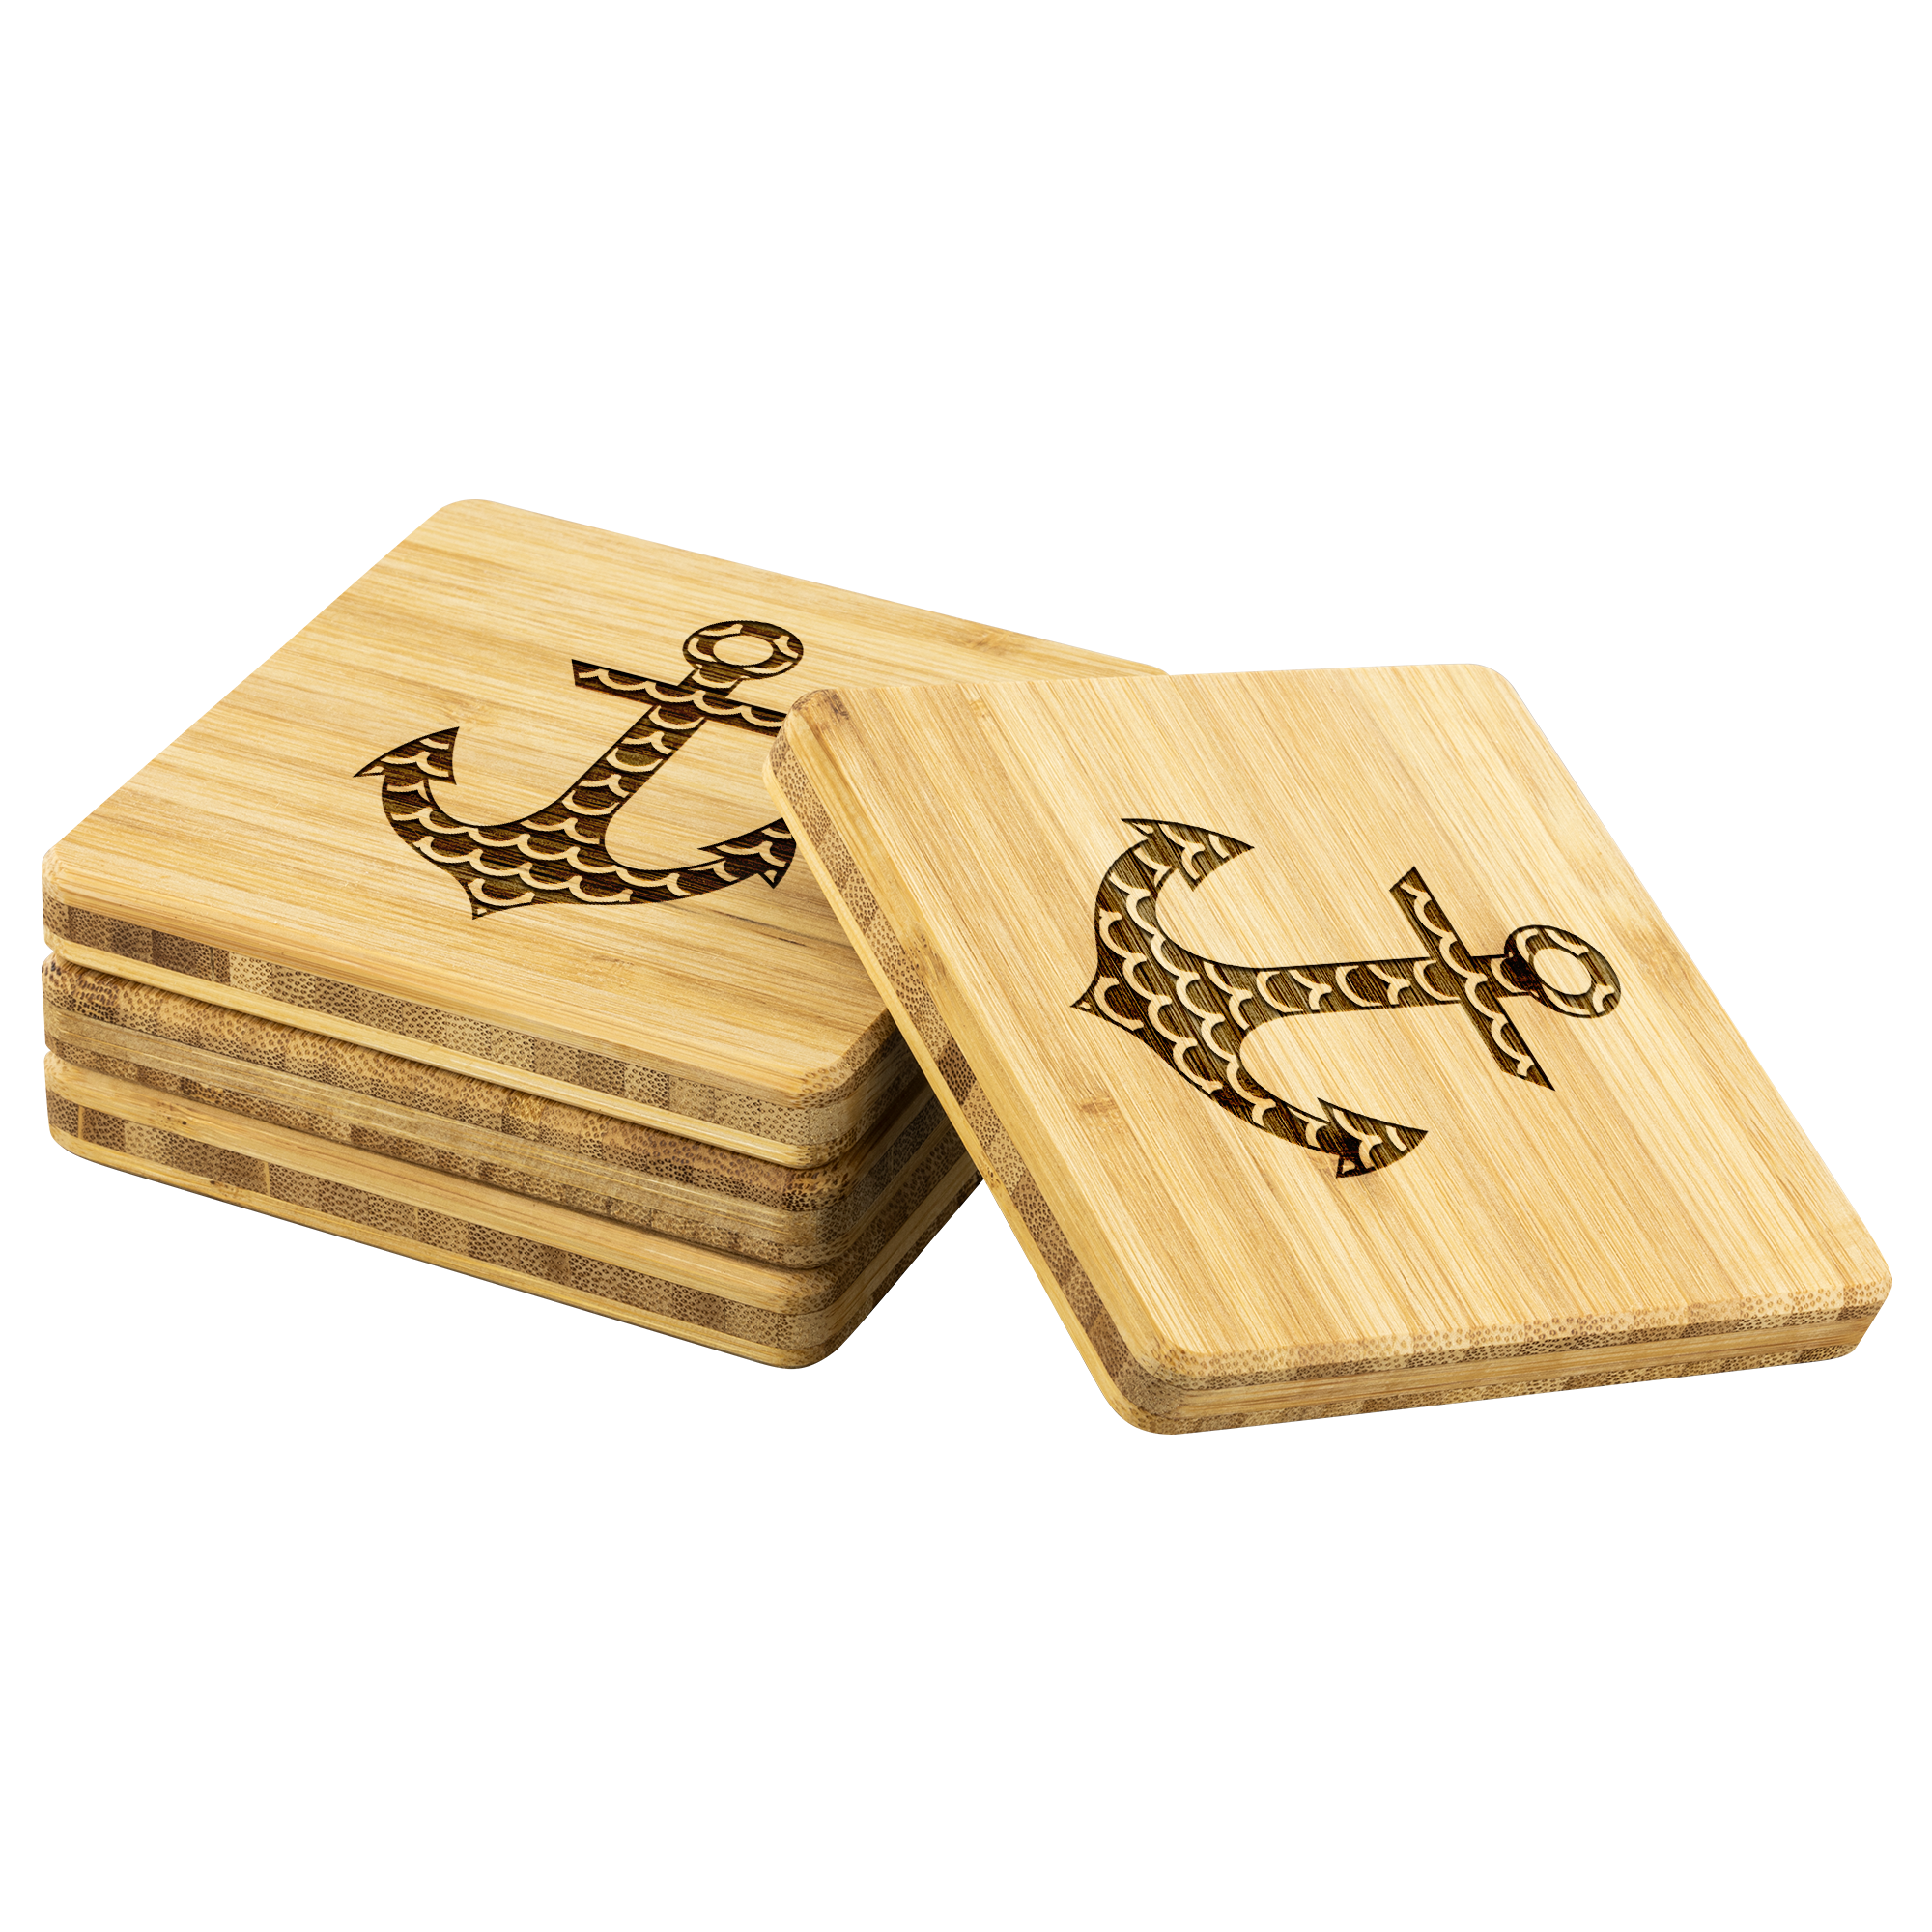 Anchor - Bamboo coaster (set of 4)